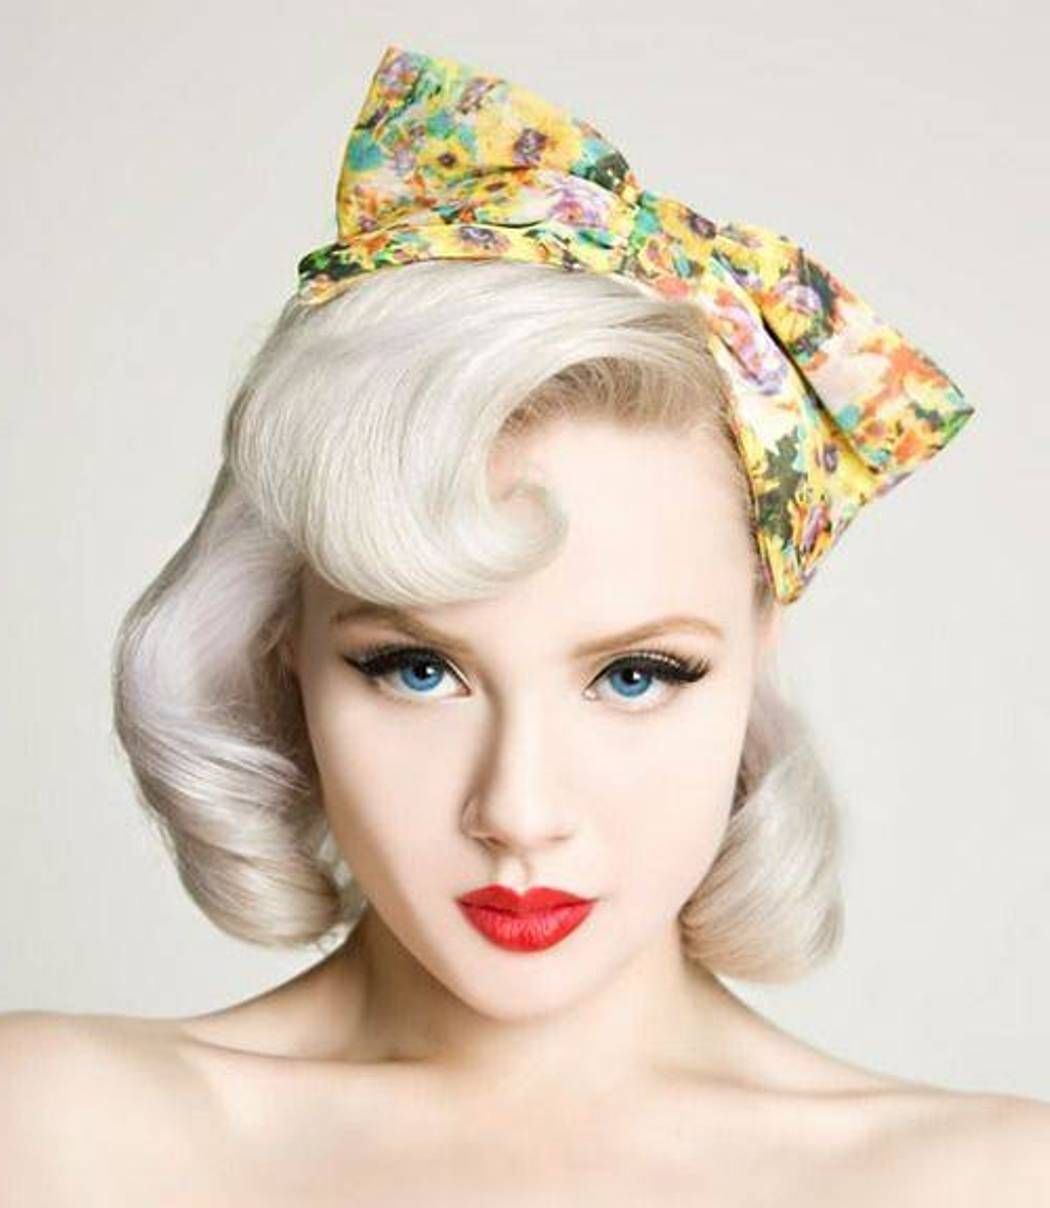 Short Blonde Pin Up Girl Hairstyles Cakepins Com Vintage Hair